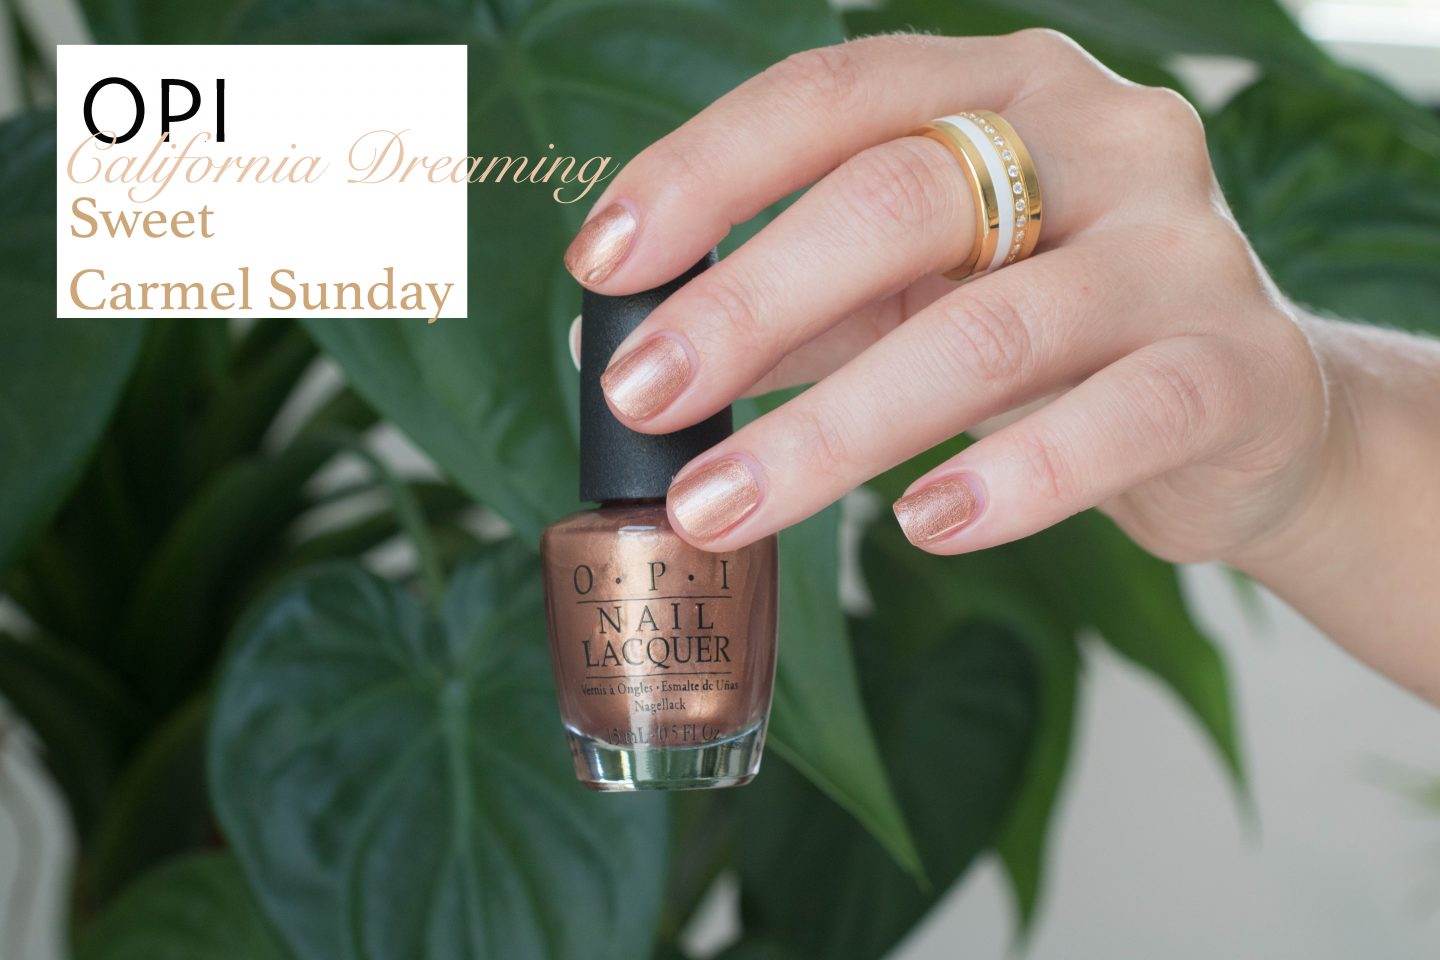 OPI California Dreaming Sweet Carmel Sunday